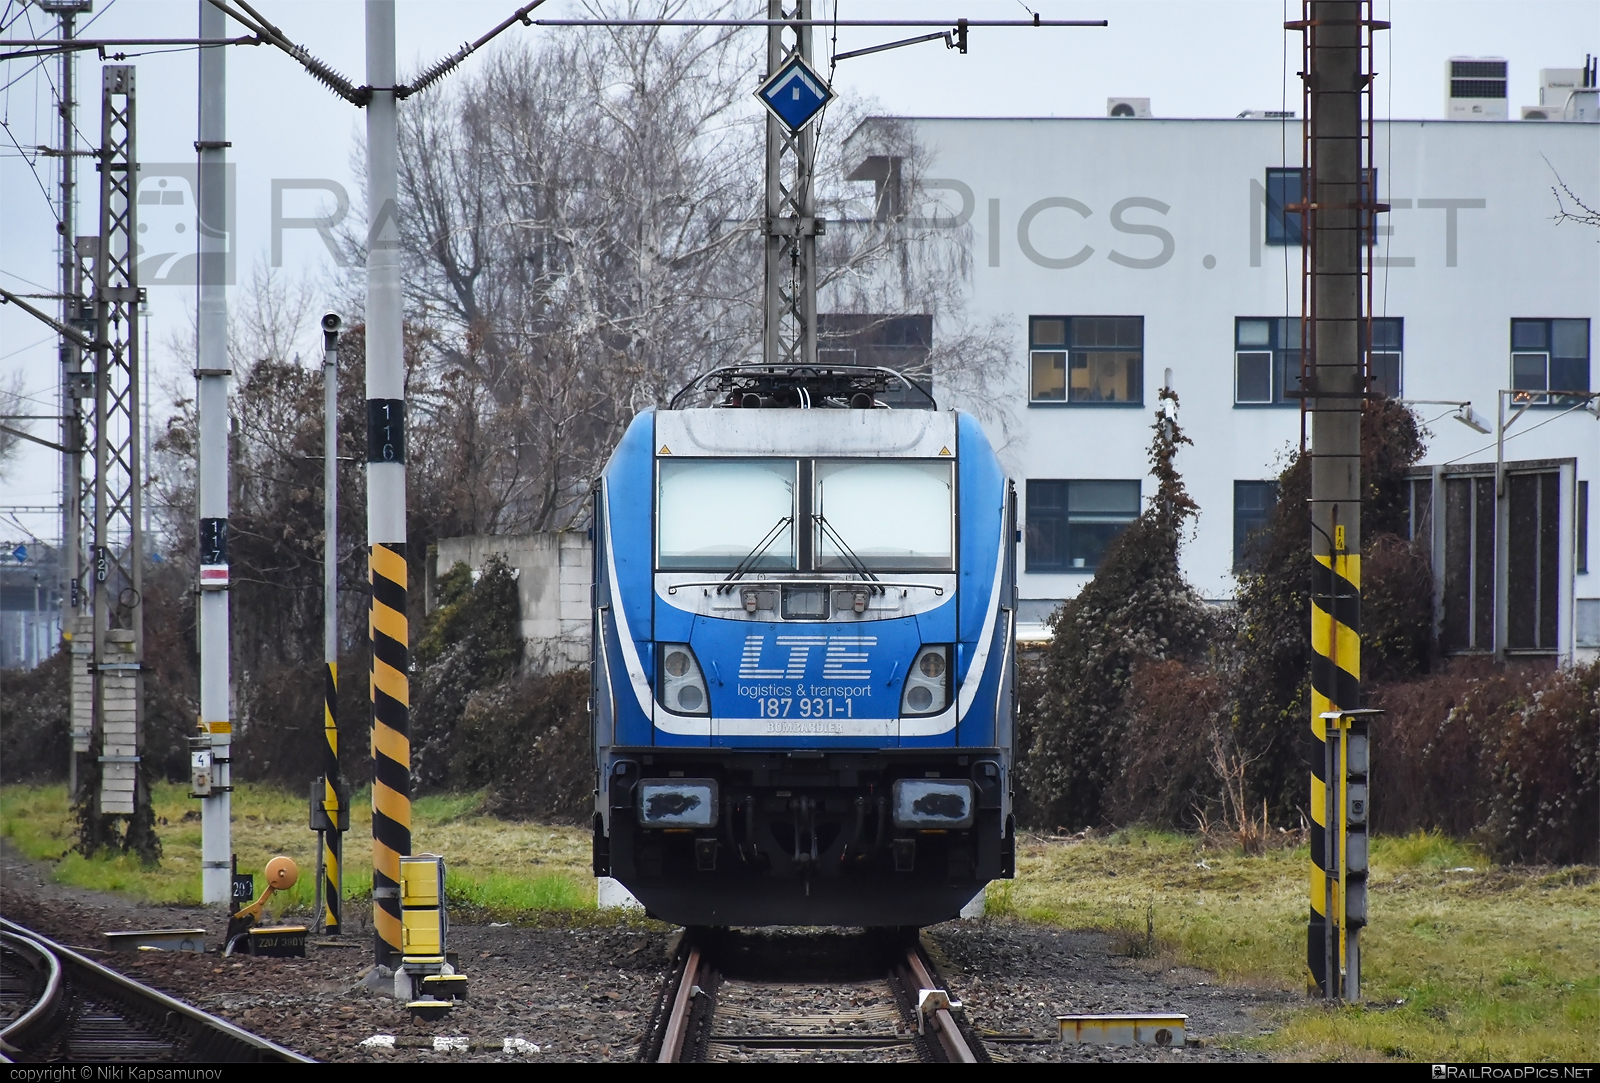 Bombardier TRAXX F160 AC3 - 187 931-1 operated by LTE Logistik und Transport GmbH #bombardier #bombardiertraxx #lte #ltelogistikundtransport #ltelogistikundtransportgmbh #traxx #traxxf160 #traxxf160ac #traxxf160ac3